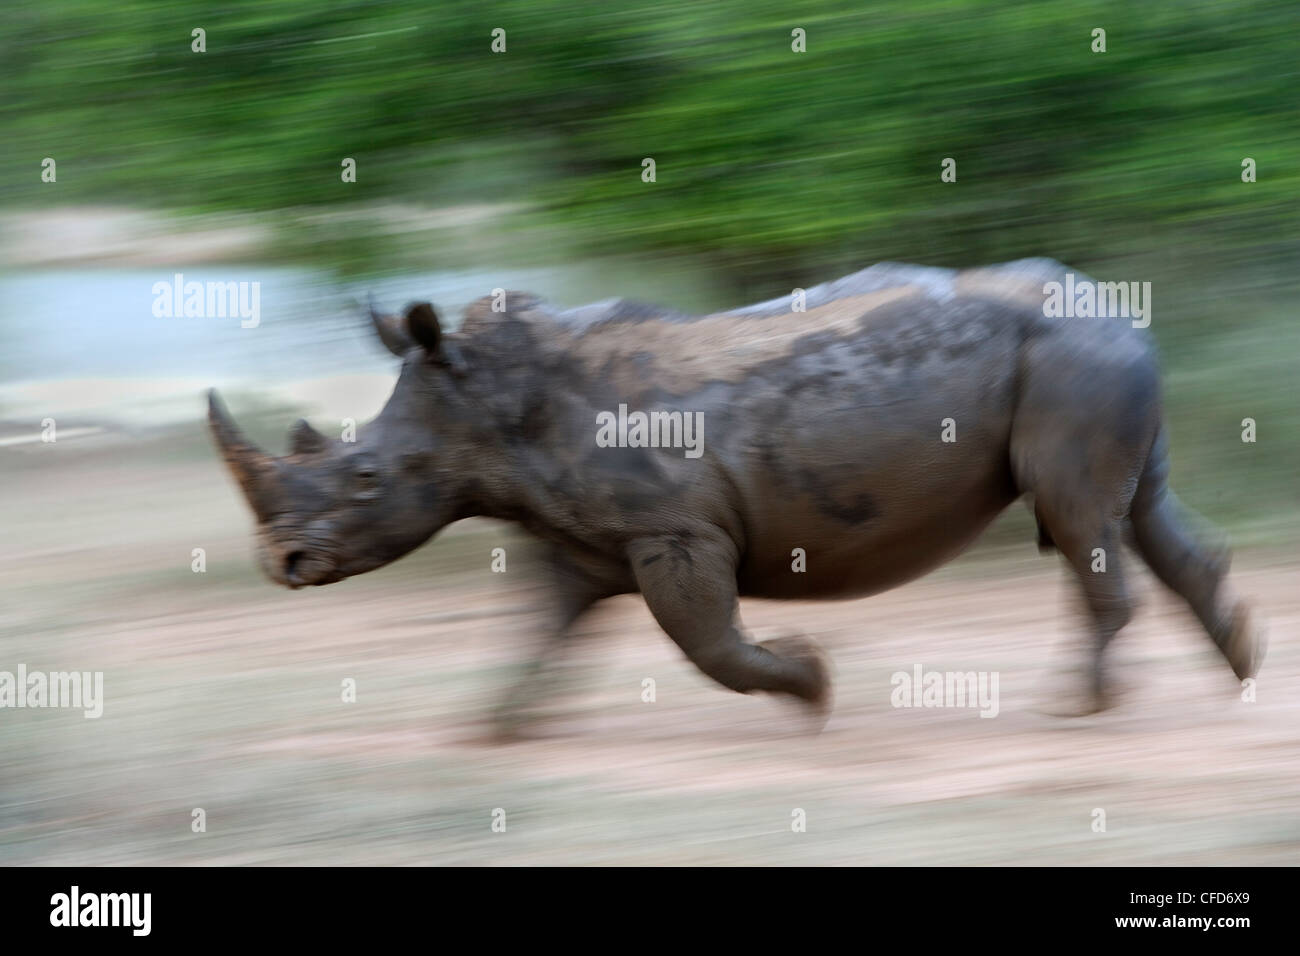 White rhino (Ceratotherium simum) charging, Hlane Royal National Park game reserve, Swaziland, Africa Stock Photo